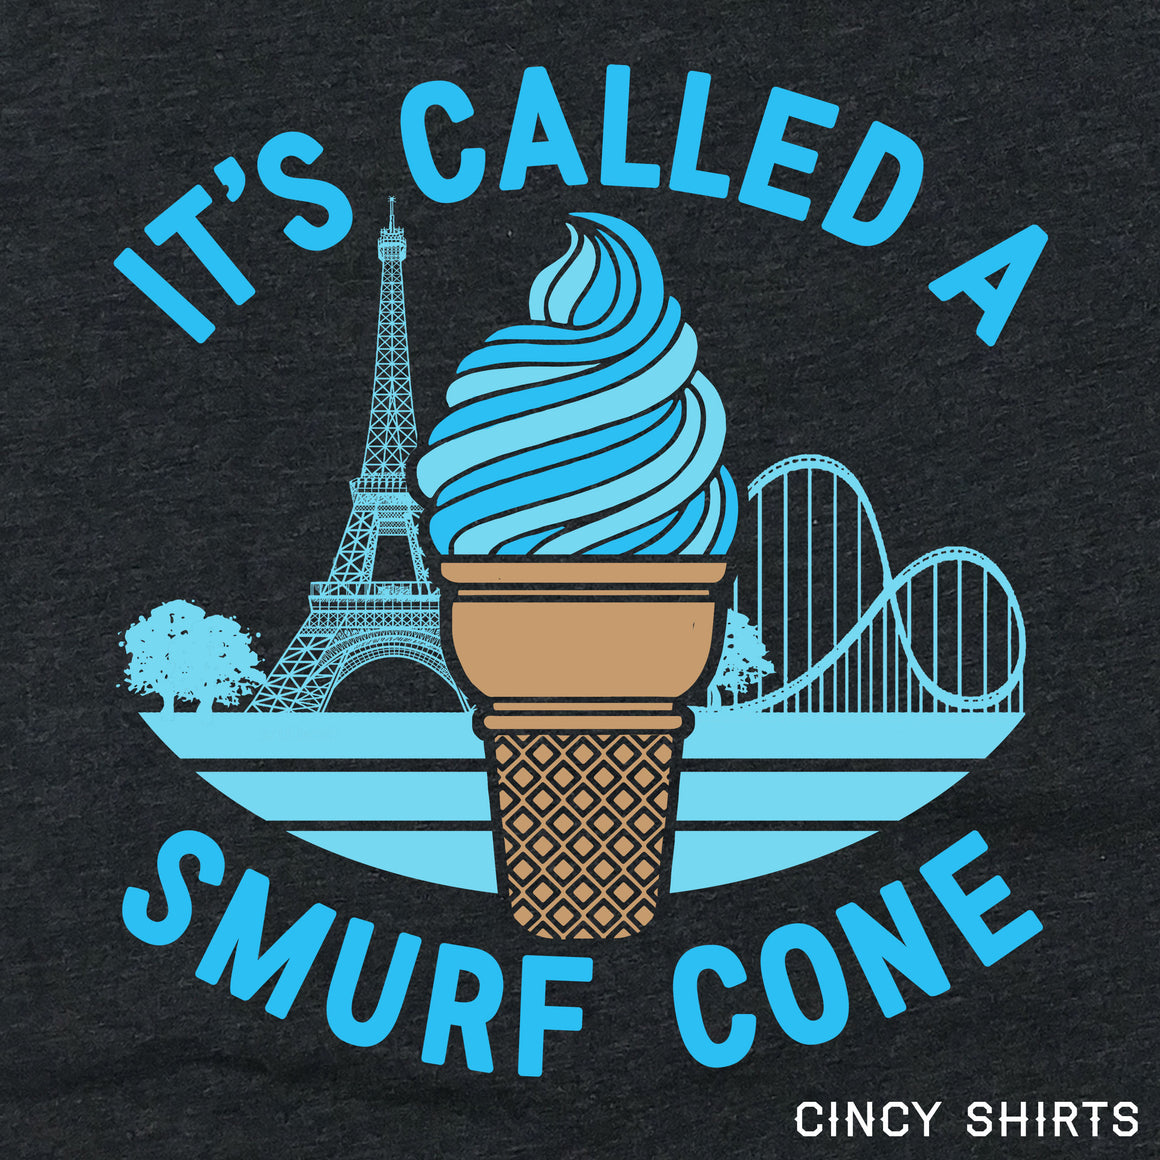 It's Called a Smurf Cone logo image